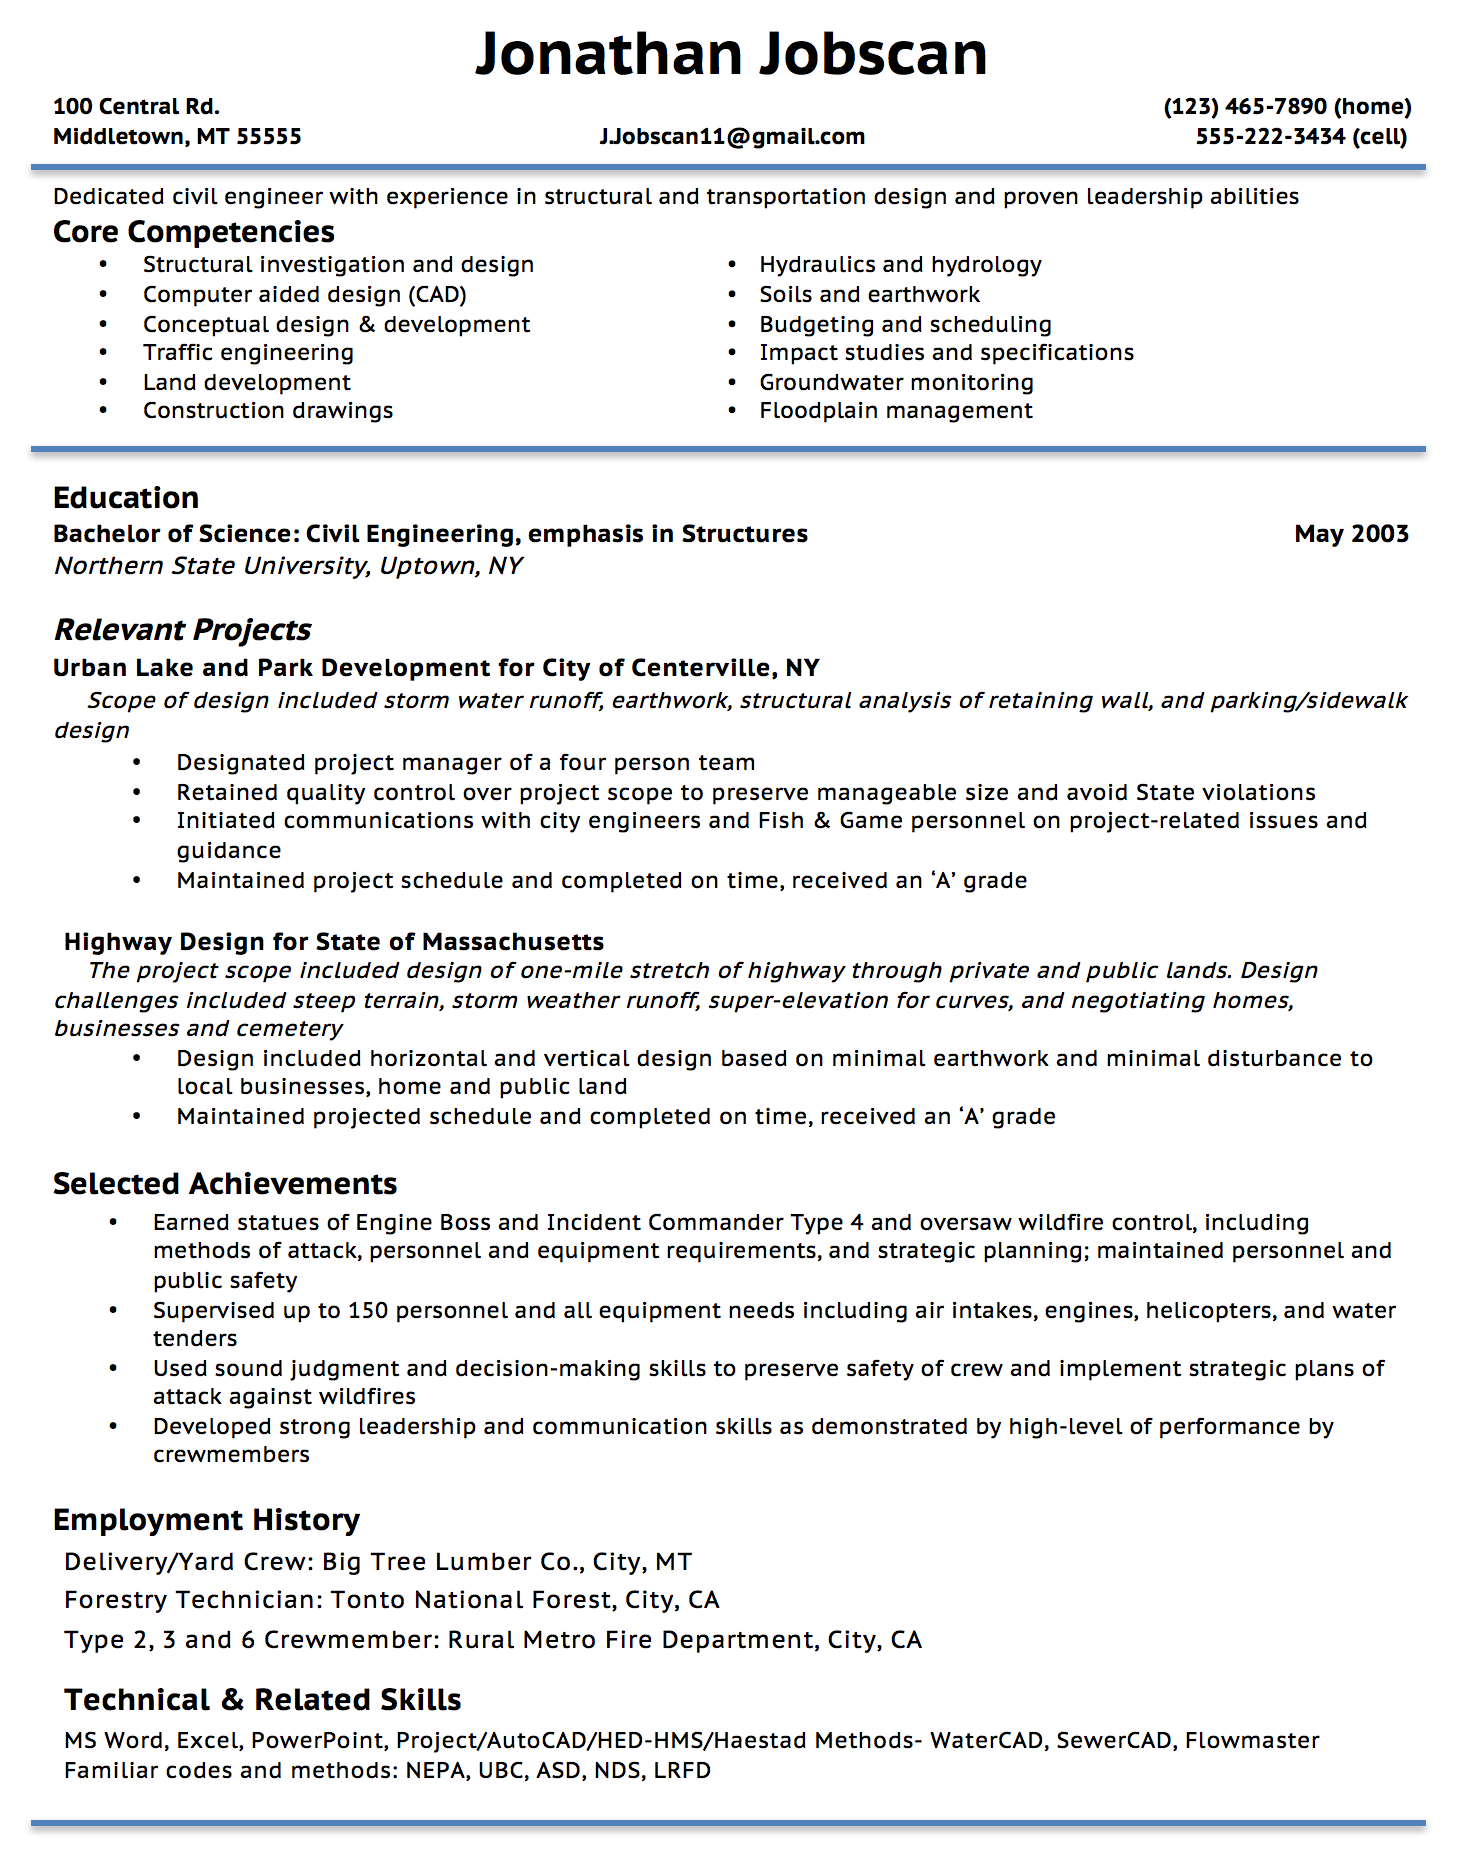 Opposenewapstandardsus  Gorgeous Resume Writing Guide  Jobscan With Extraordinary Example Of A Functional Resume Format With Delightful Production Resume Sample Also Professional Resume Templates Free In Addition Bartending Resume Examples And Guidance Counselor Resume As Well As Working Resume Additionally Ciso Resume From Jobscanco With Opposenewapstandardsus  Extraordinary Resume Writing Guide  Jobscan With Delightful Example Of A Functional Resume Format And Gorgeous Production Resume Sample Also Professional Resume Templates Free In Addition Bartending Resume Examples From Jobscanco